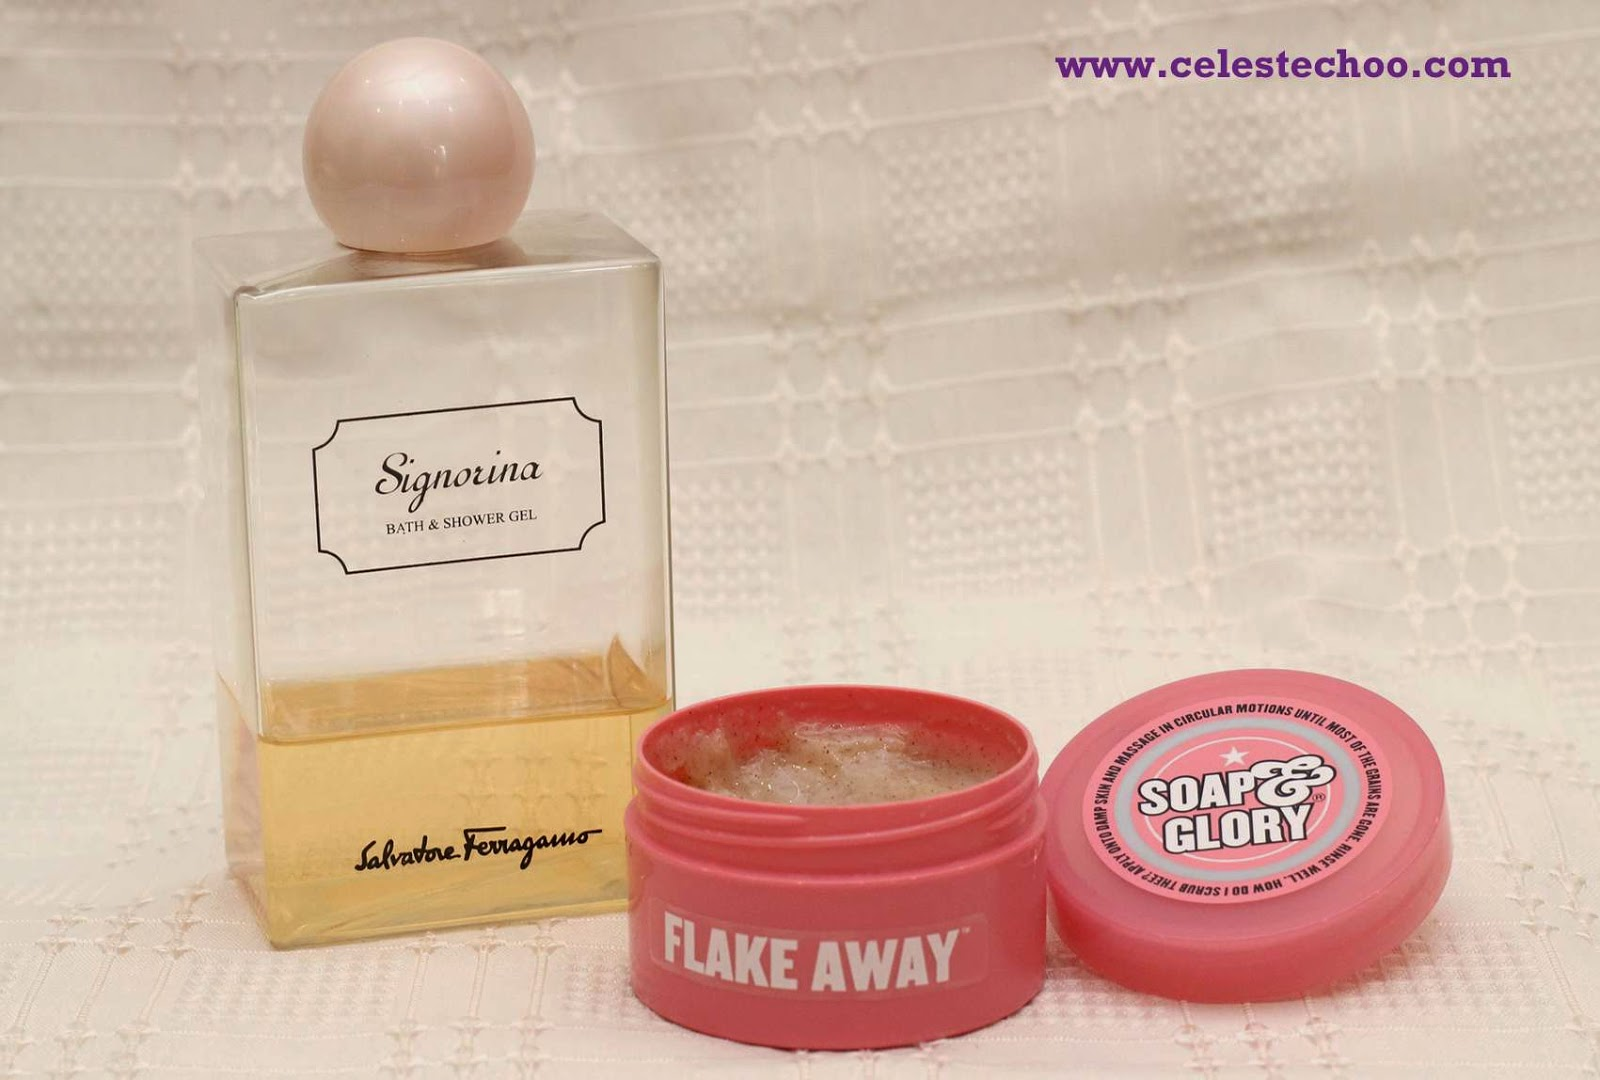 soap-and-glory-flake-away-and-shower-gel